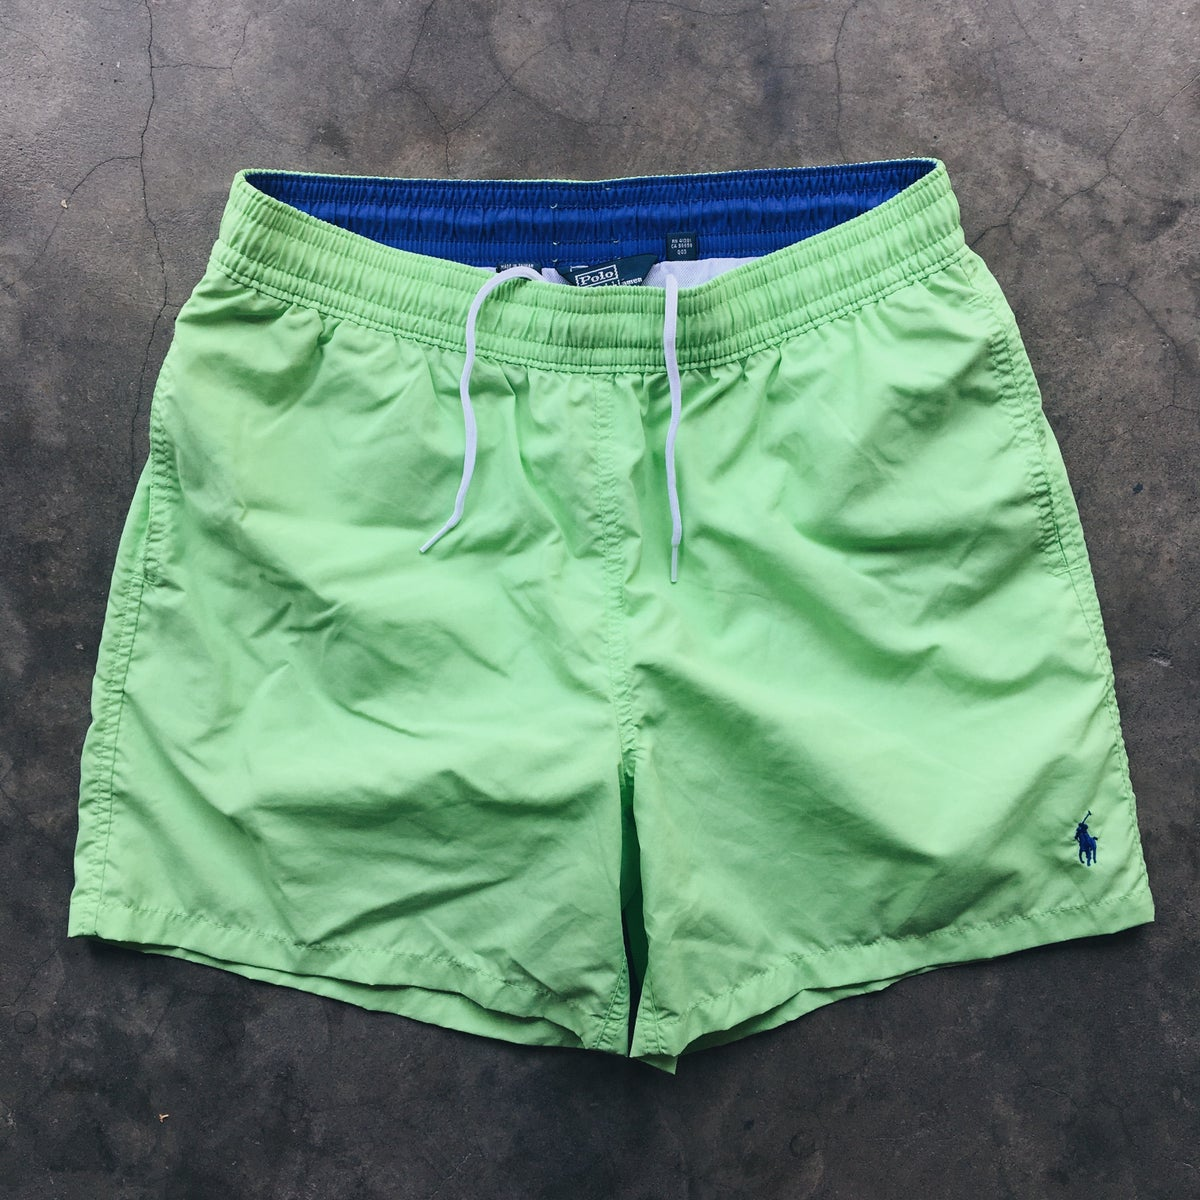 Image of Original Early 90's Polo Ralph Lauren Trunks.